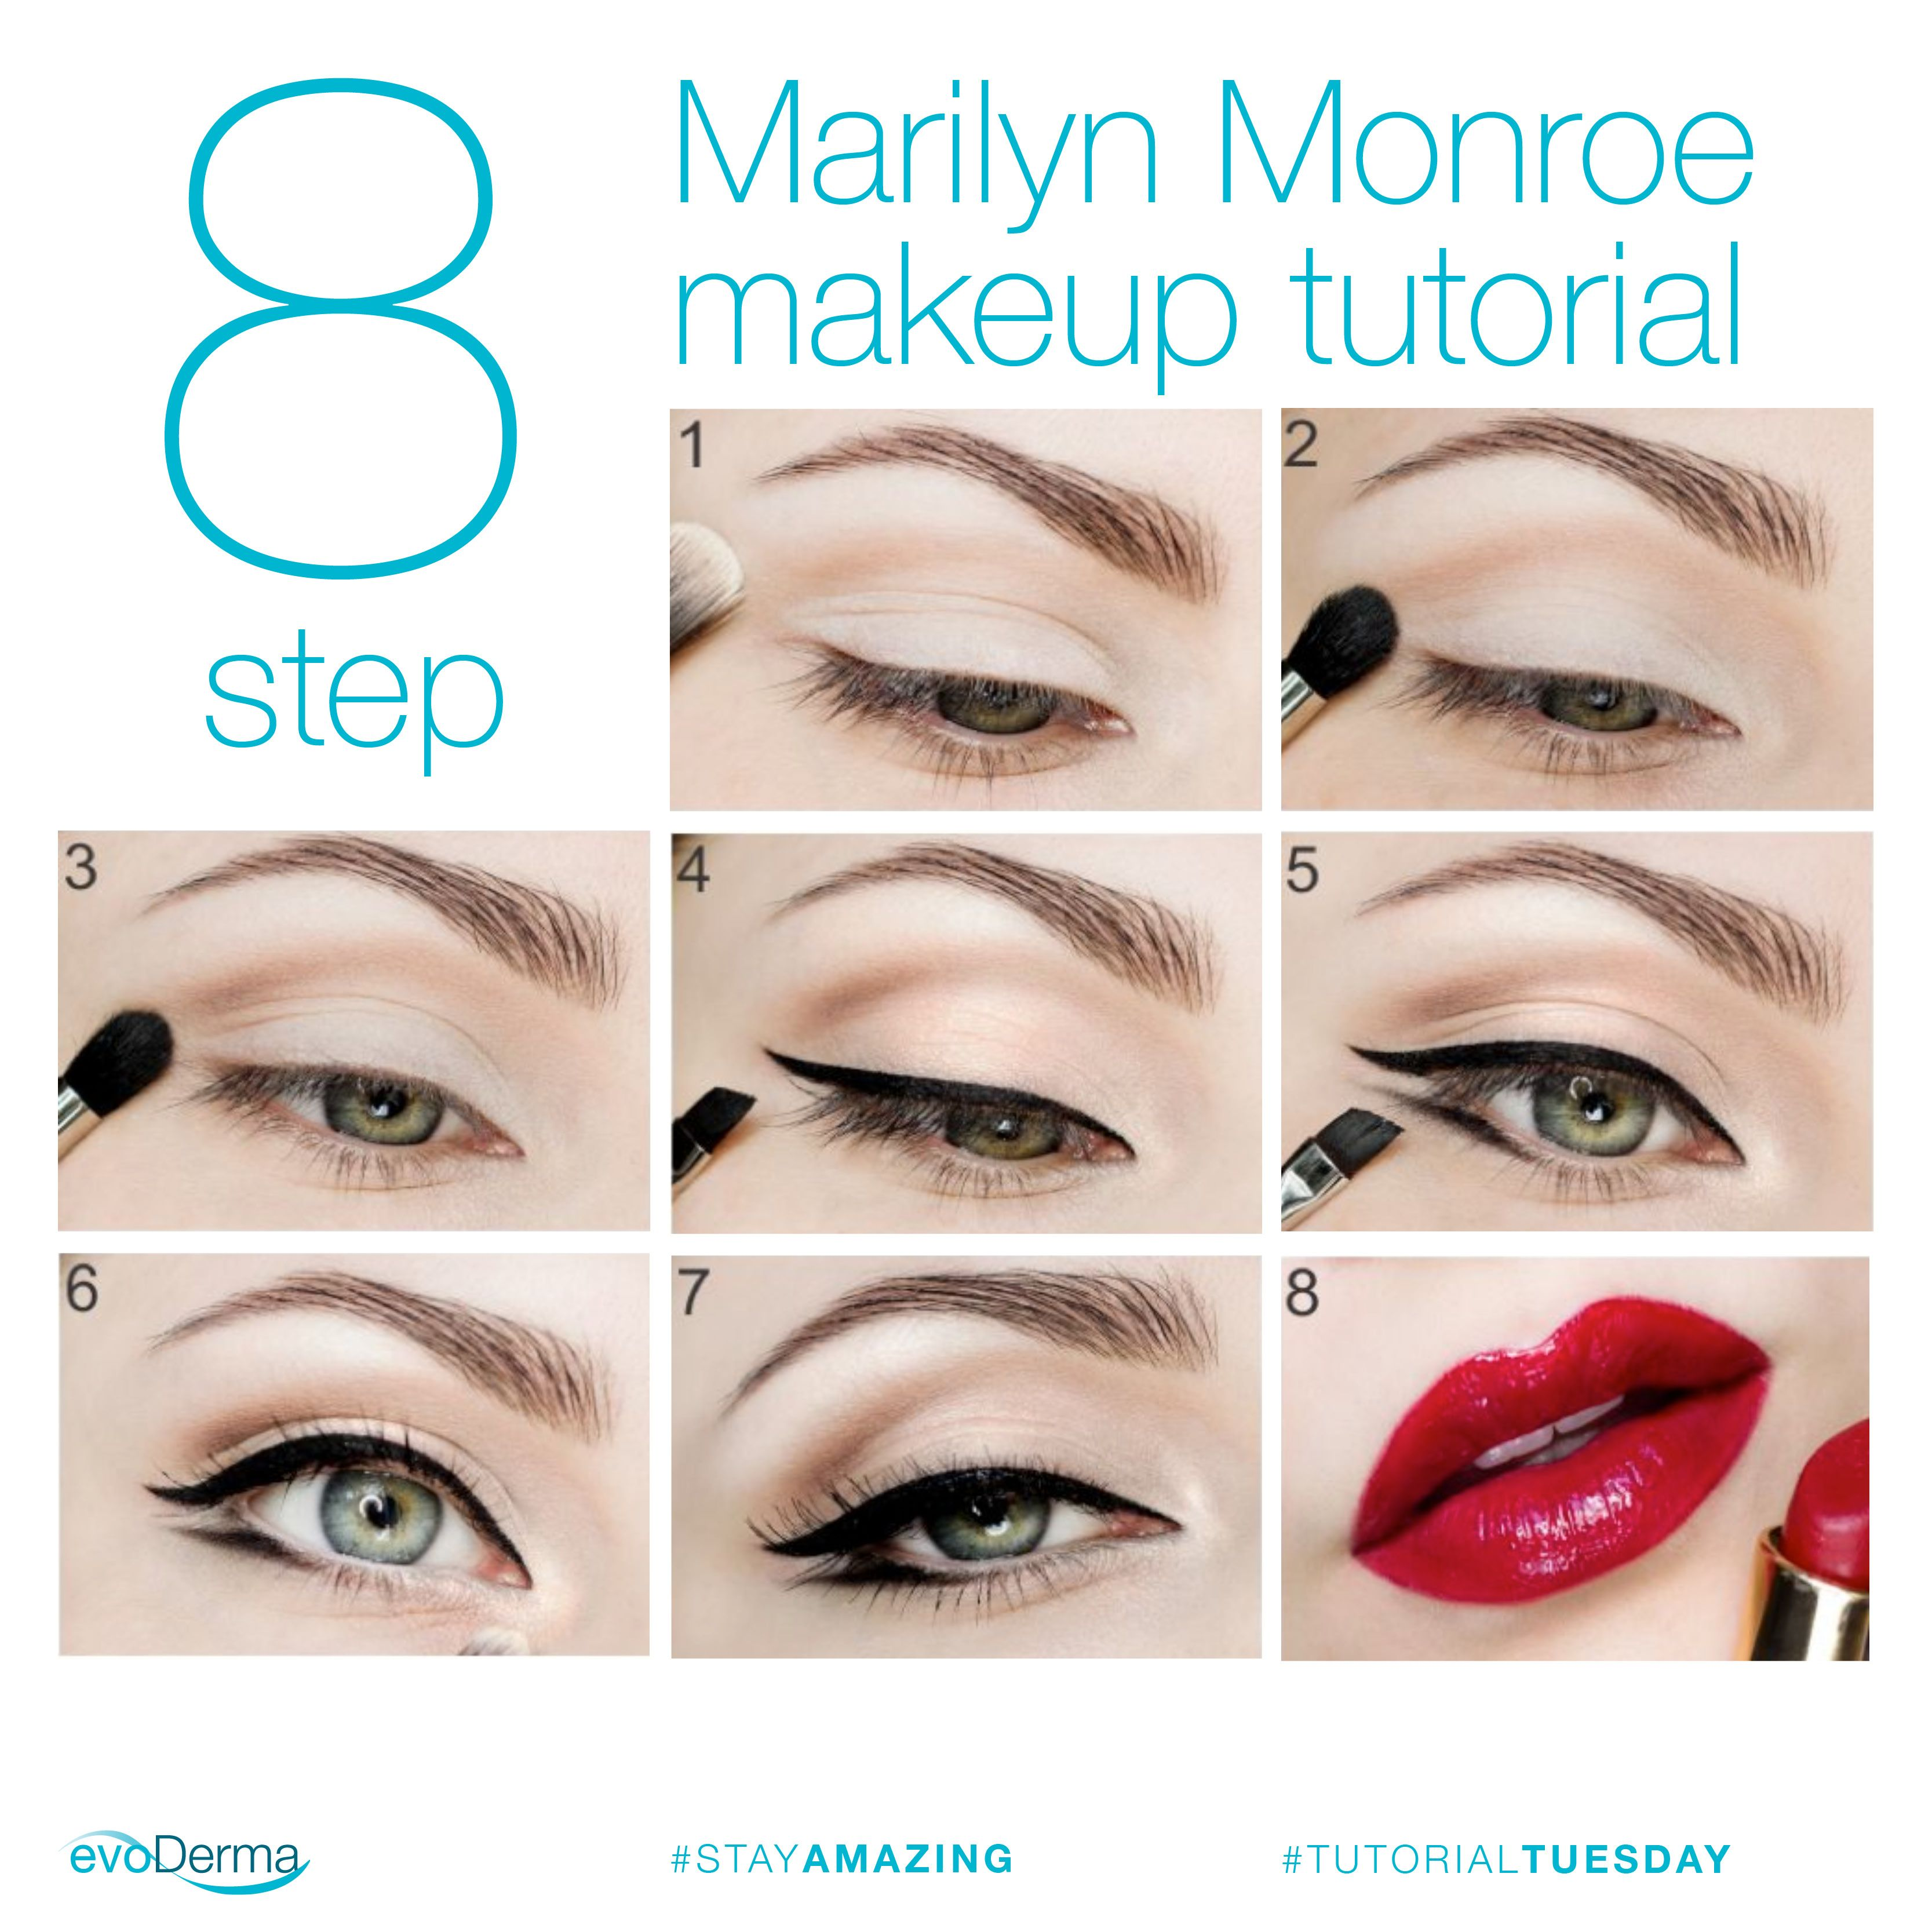 tutorialtuesday Our favorite makeup look is from the one and only